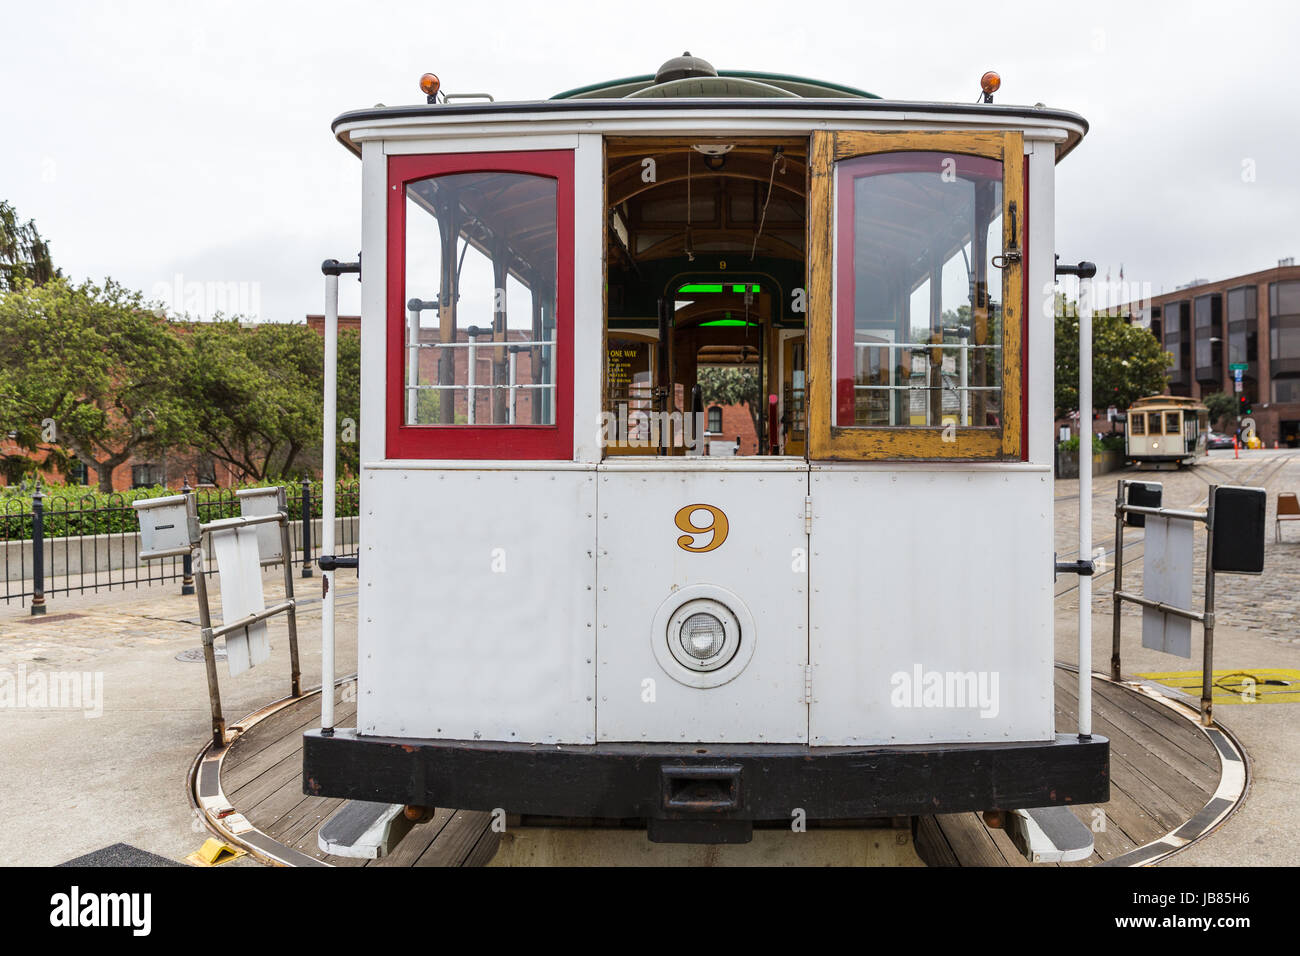 A cable car at a turnaround in San Francisco - Stock Image